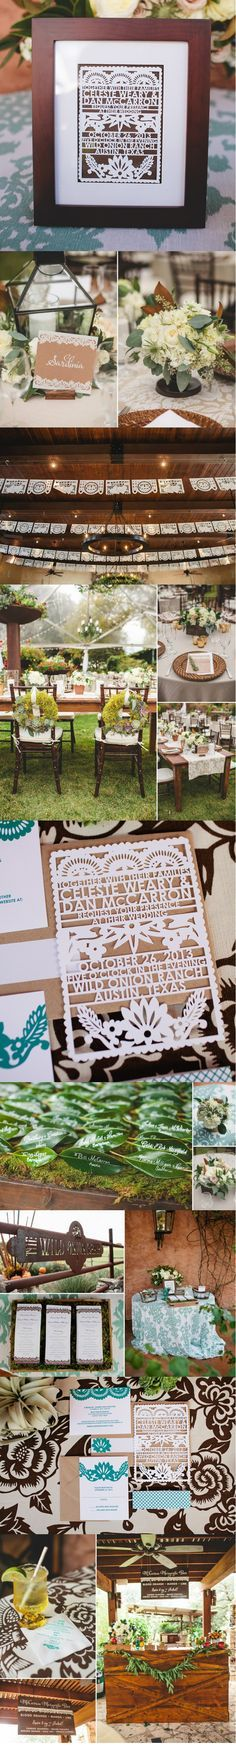 Laser Cut Wedding Invitations by Avie Designs. Papel Picado design. www.aviedesigns.com